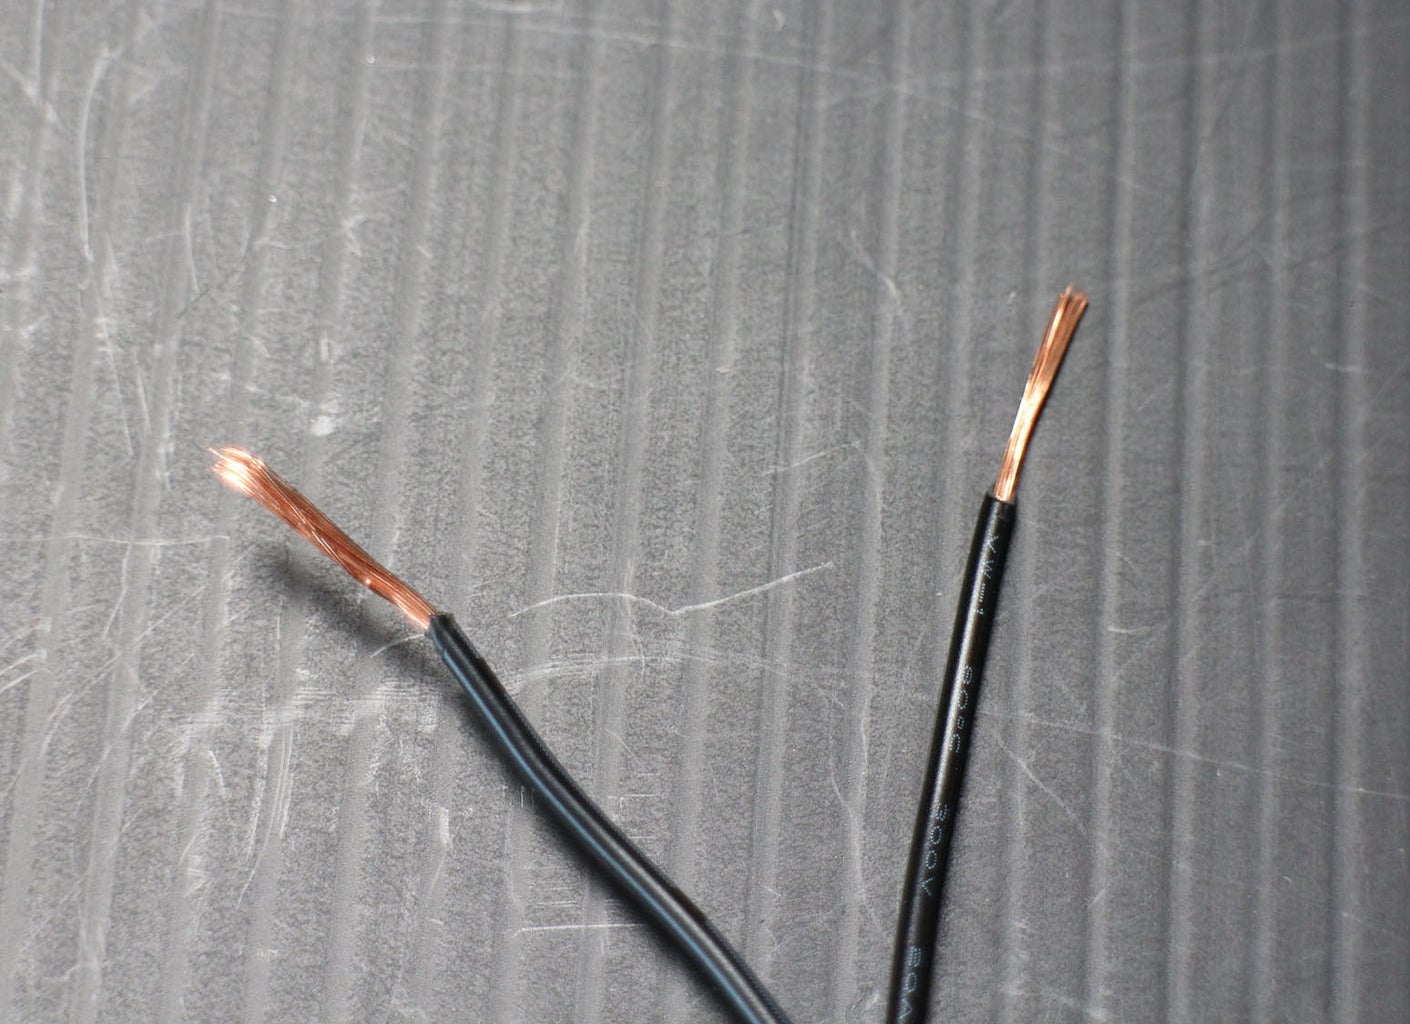 Assembly: Wire Electronics